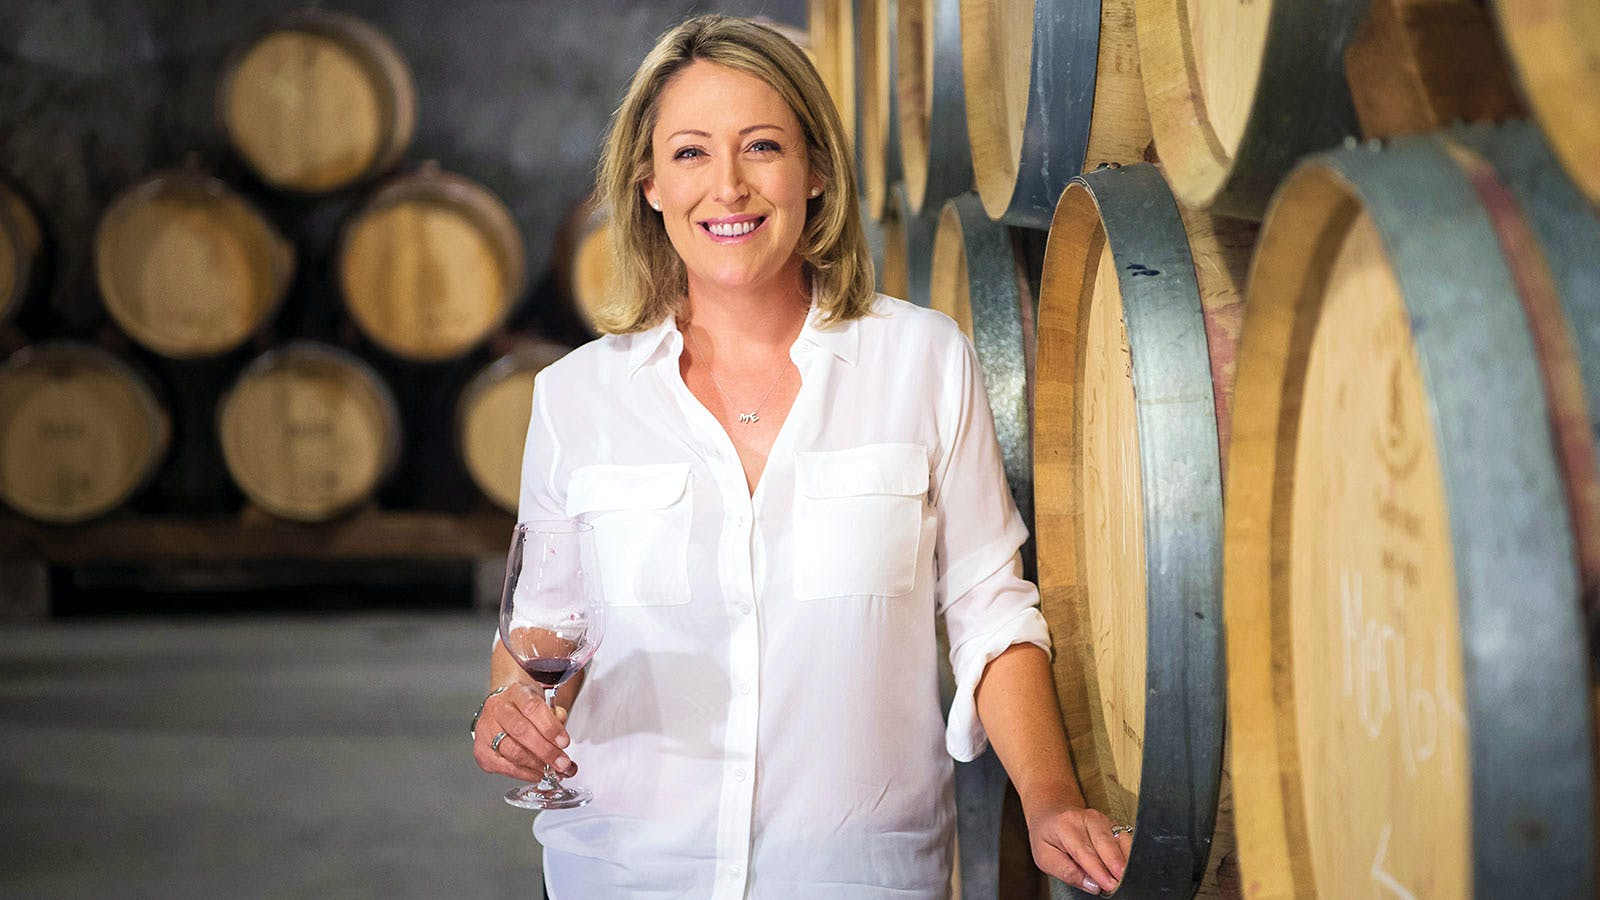 Pro Golfer Cristie Kerr Has a New Partner in Her Winery: Constellation Brands